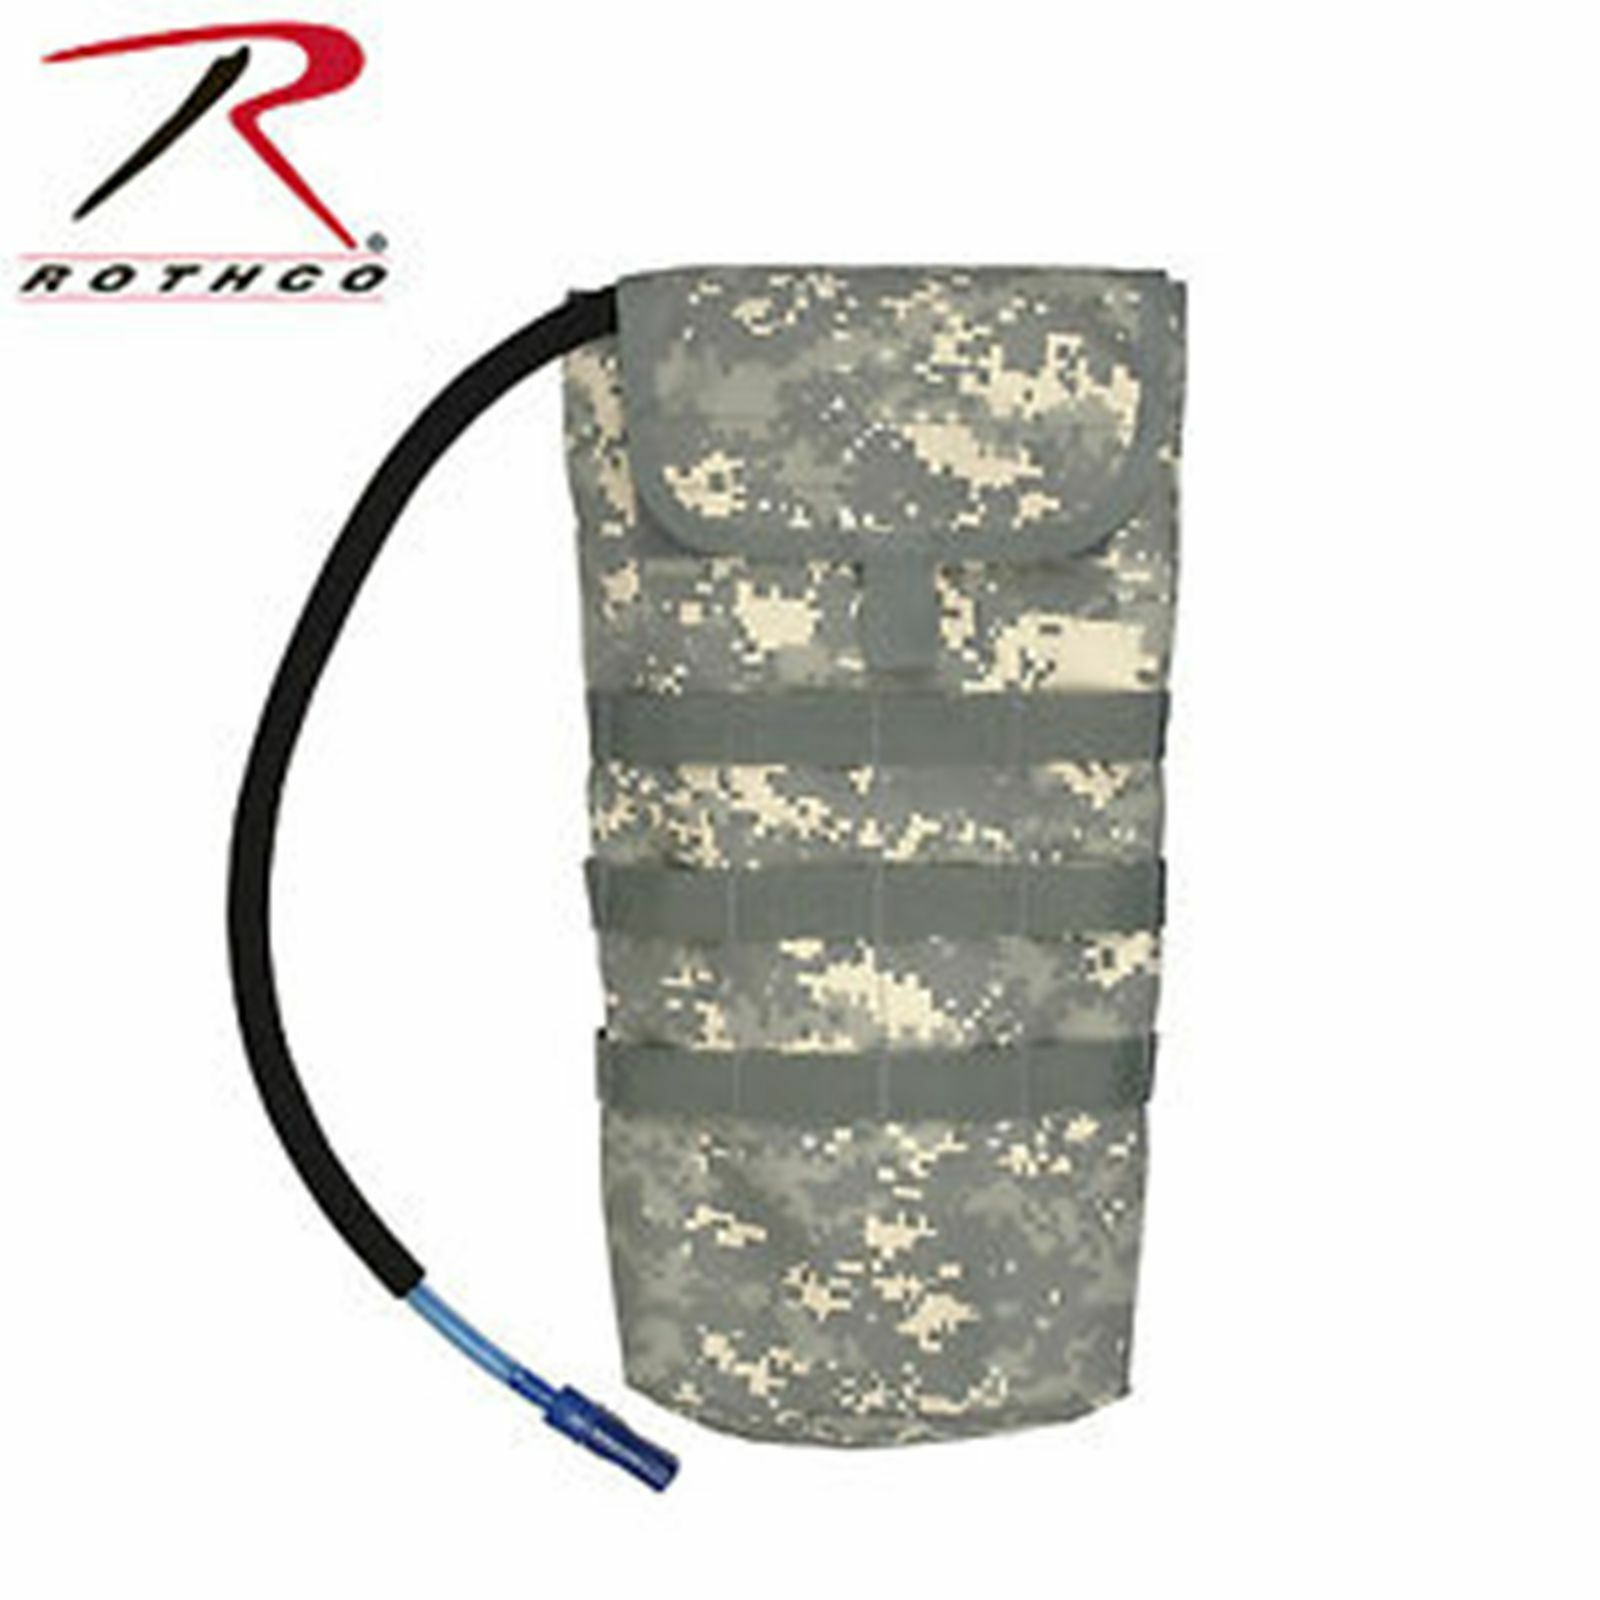 redhco MOLLE 3-Liter  Hydration System  ACU Digital Camo  fast delivery